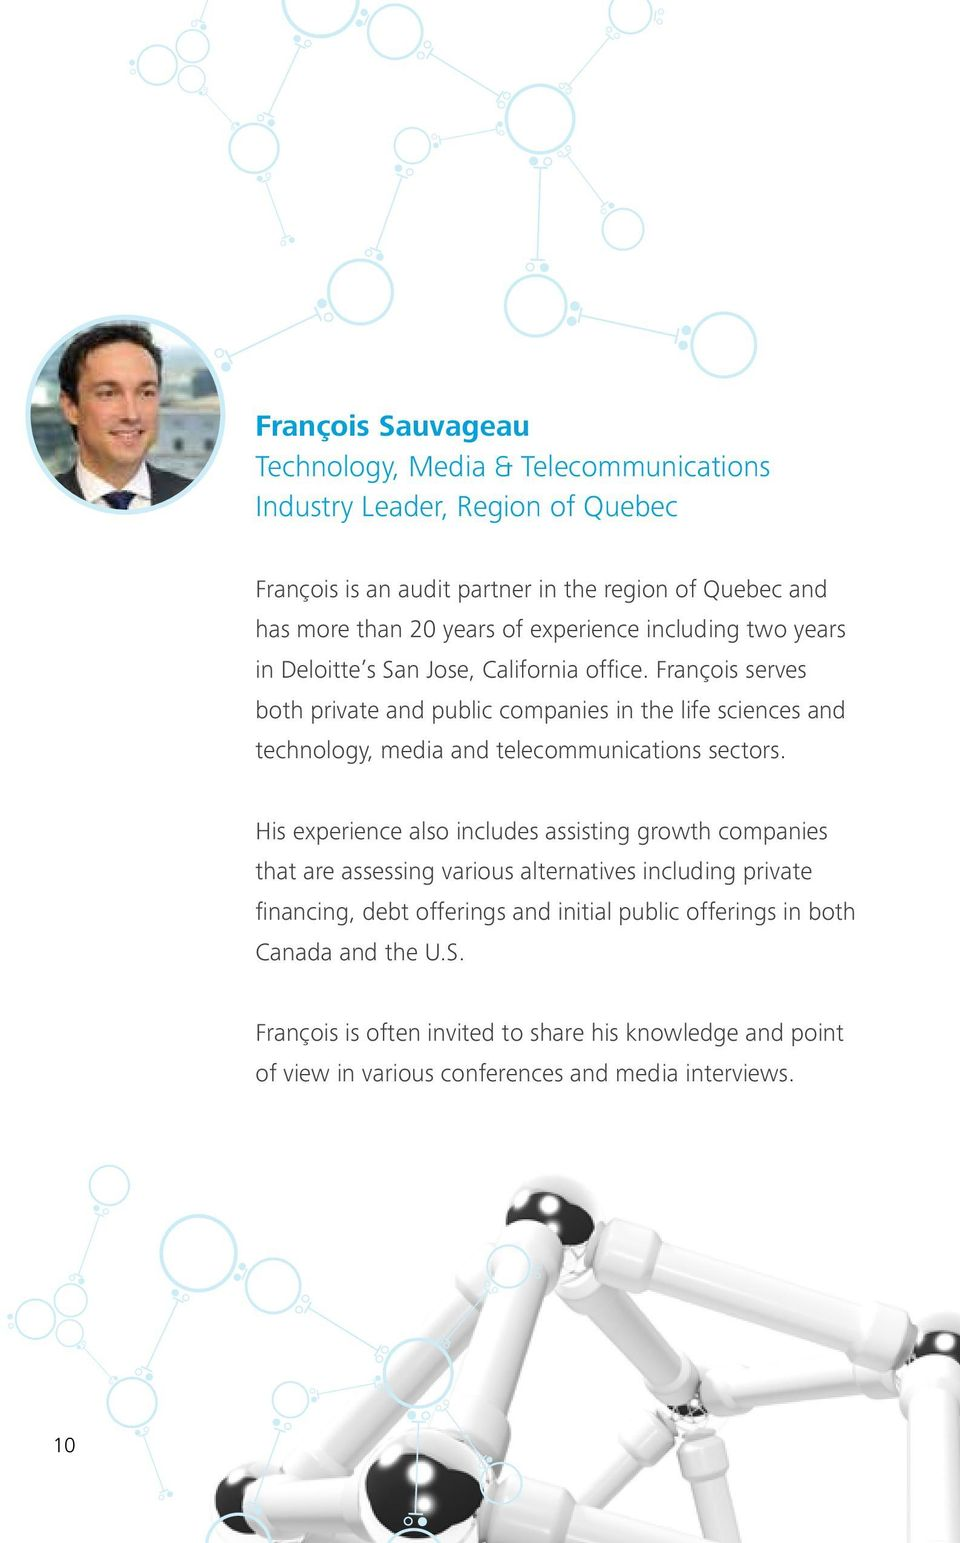 François serves both private and public companies in the life sciences and technology, media and telecommunications sectors.